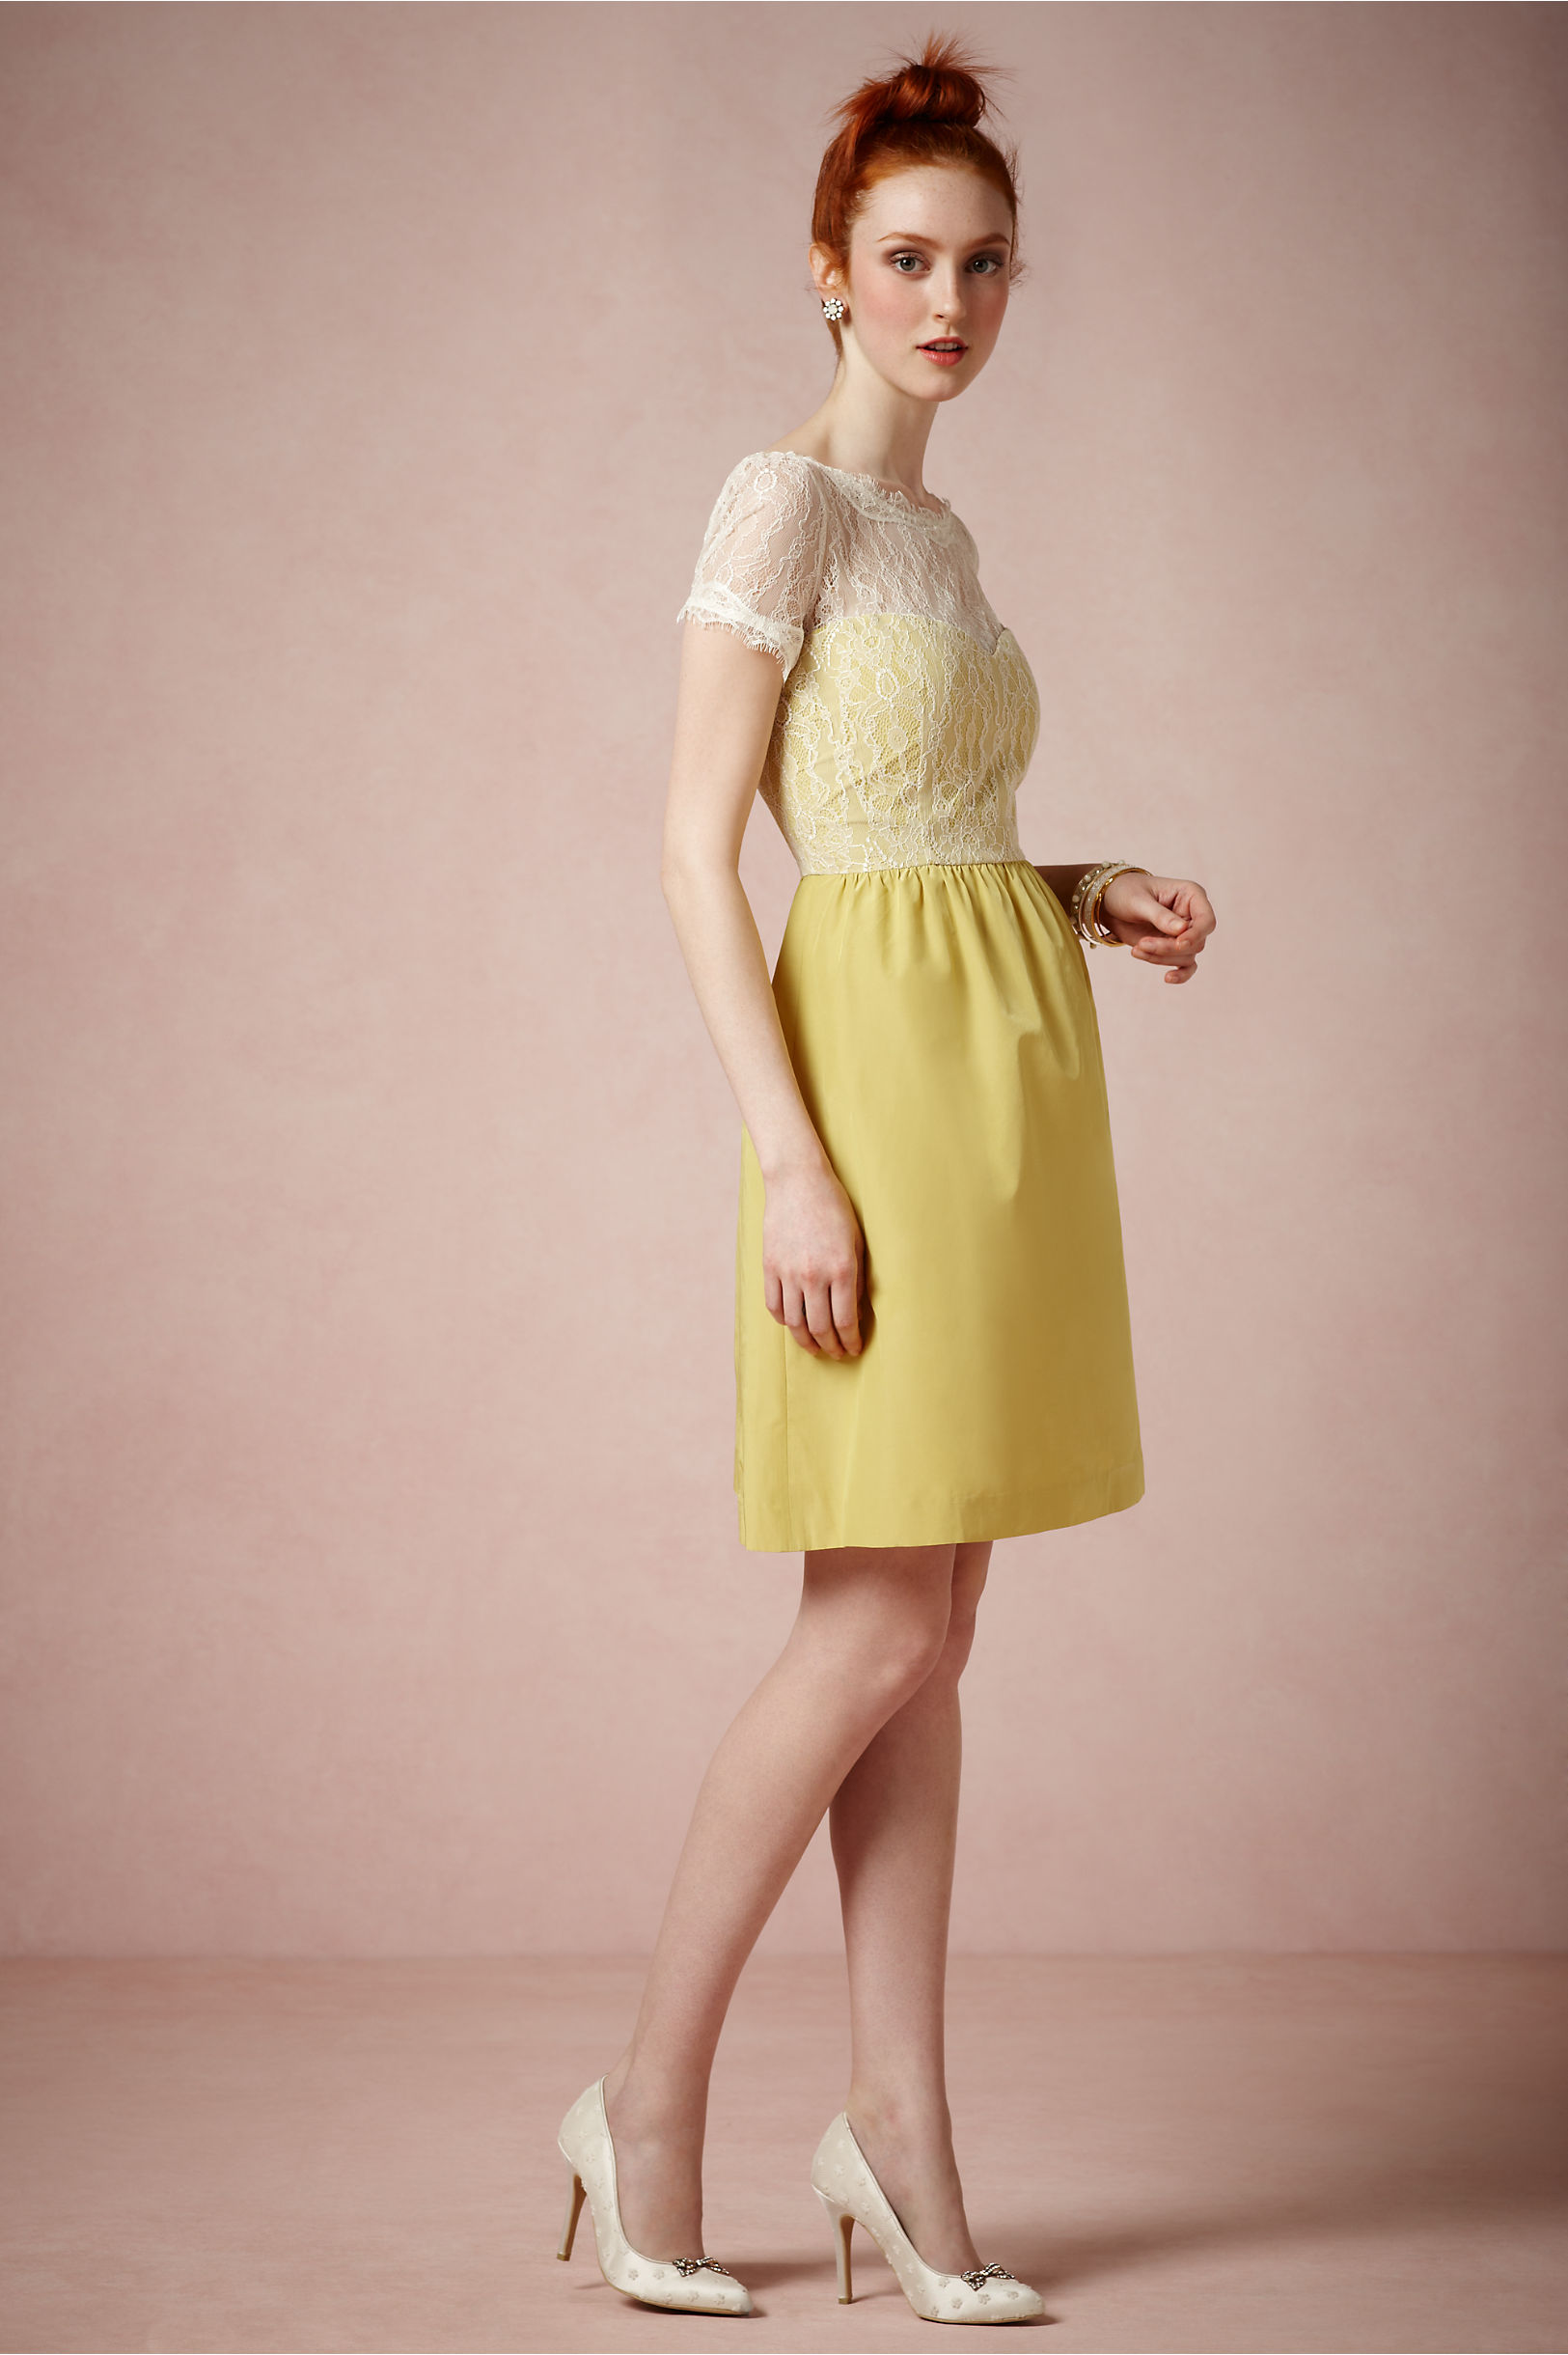 Sorbetto Dress in Bridal Party   BHLDN